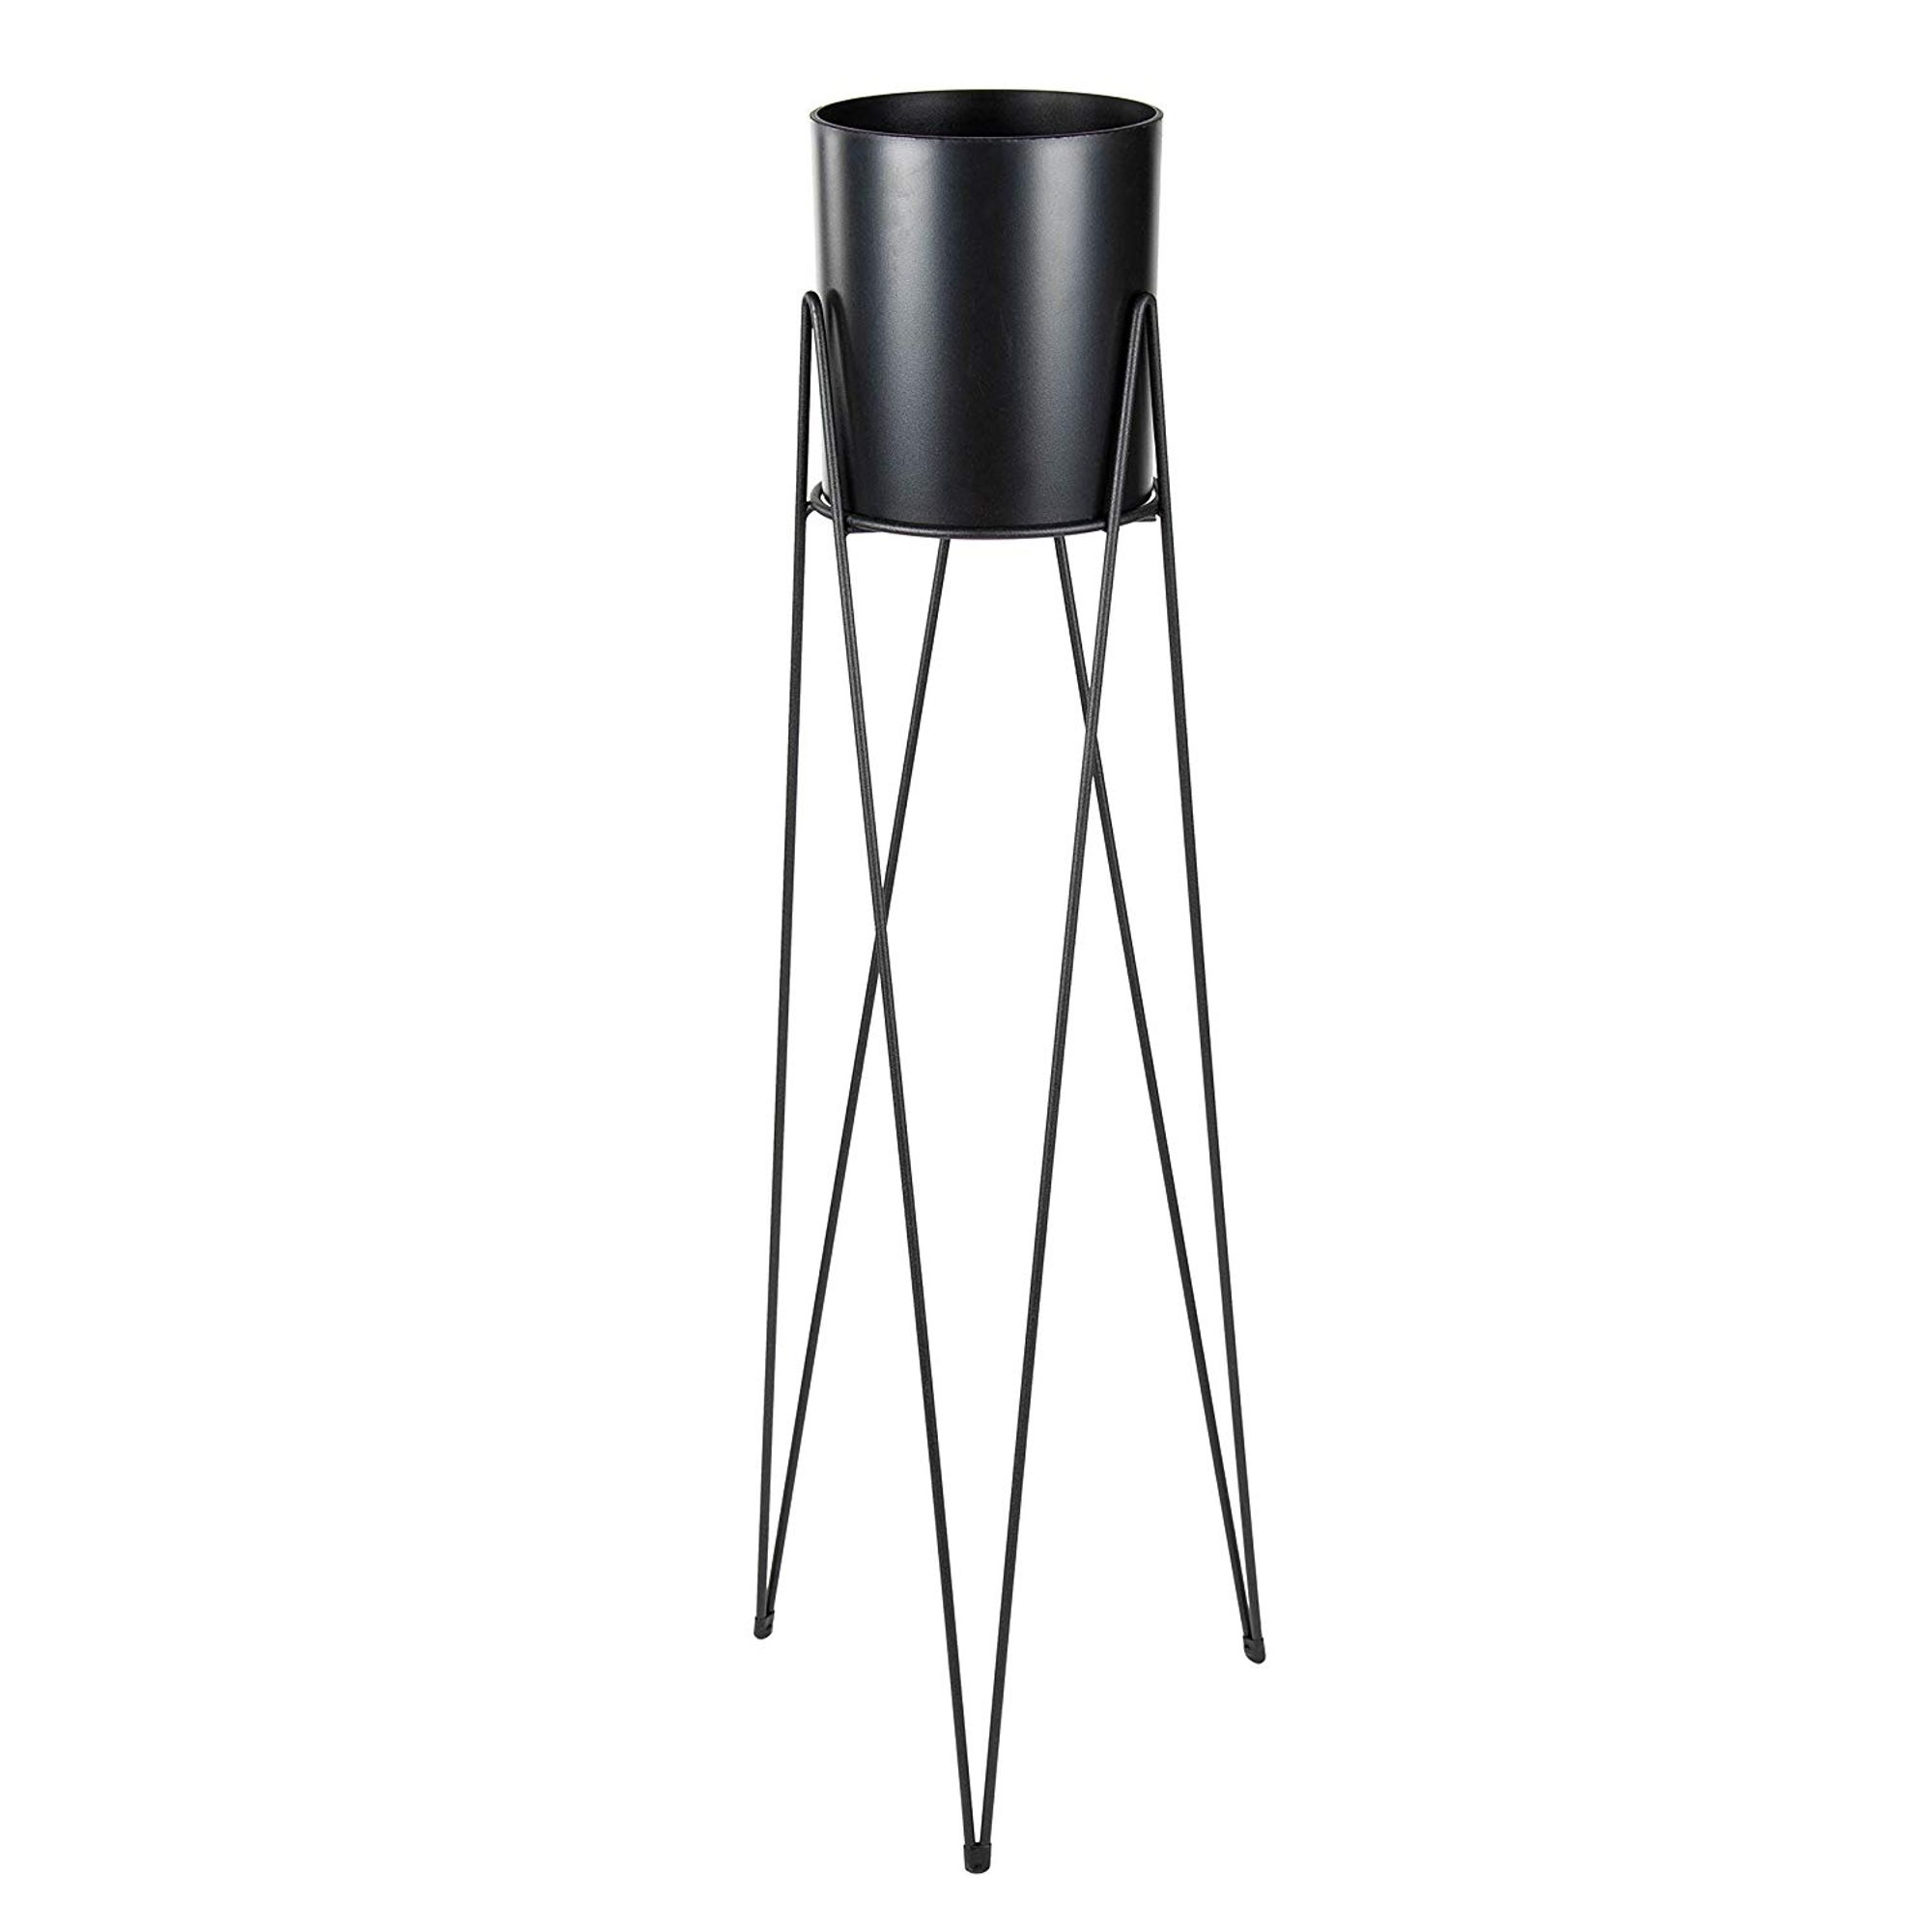 Plant Stand Set Modern Plastic Planter With Tall Metal Stand Decorative Tall Standing Flower Succulent Pot Holder Indoor Outdoor Home Decor For Terrace Patio Black 32 7 X 11 X